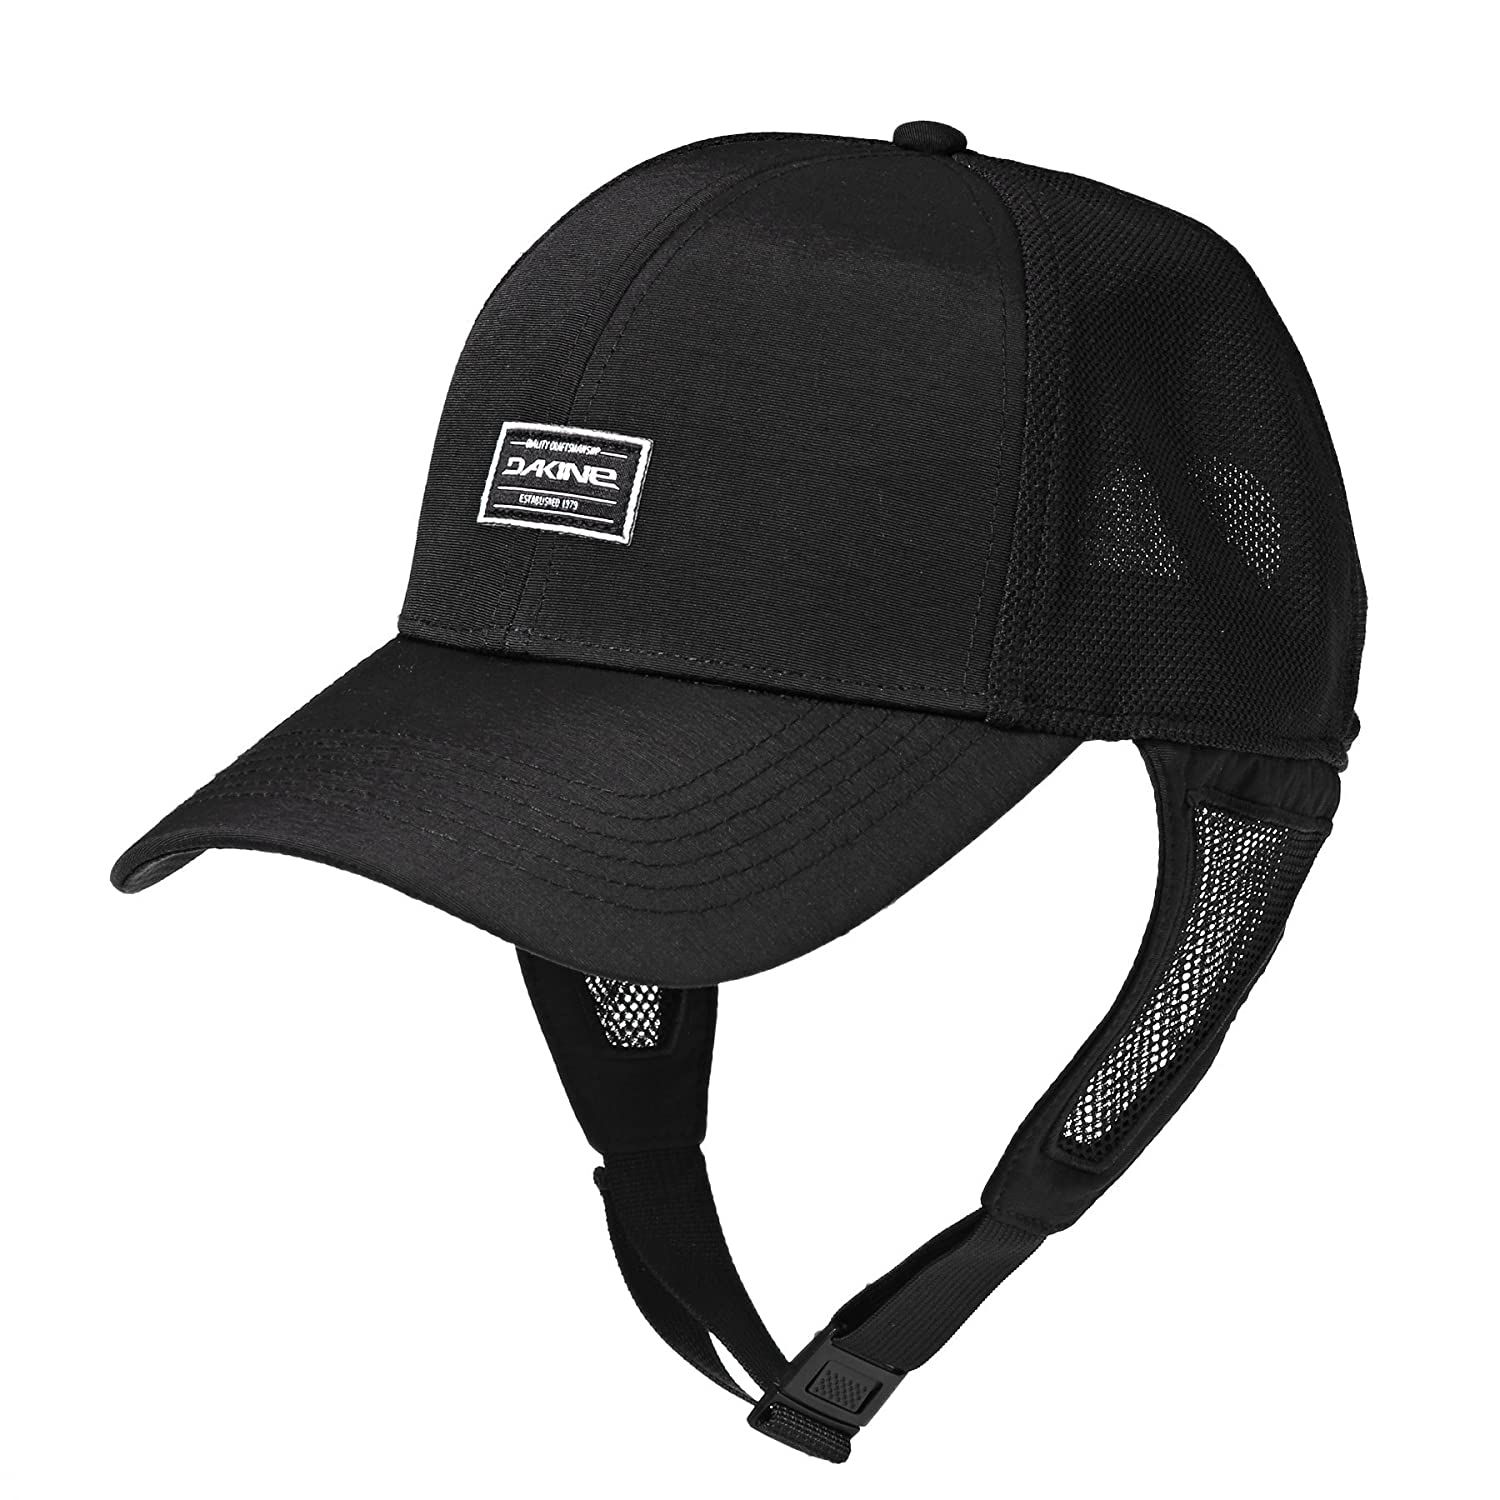 c964b65db91 Protect Your Head With The Best Sun Hat for Surfing And Paddle ...